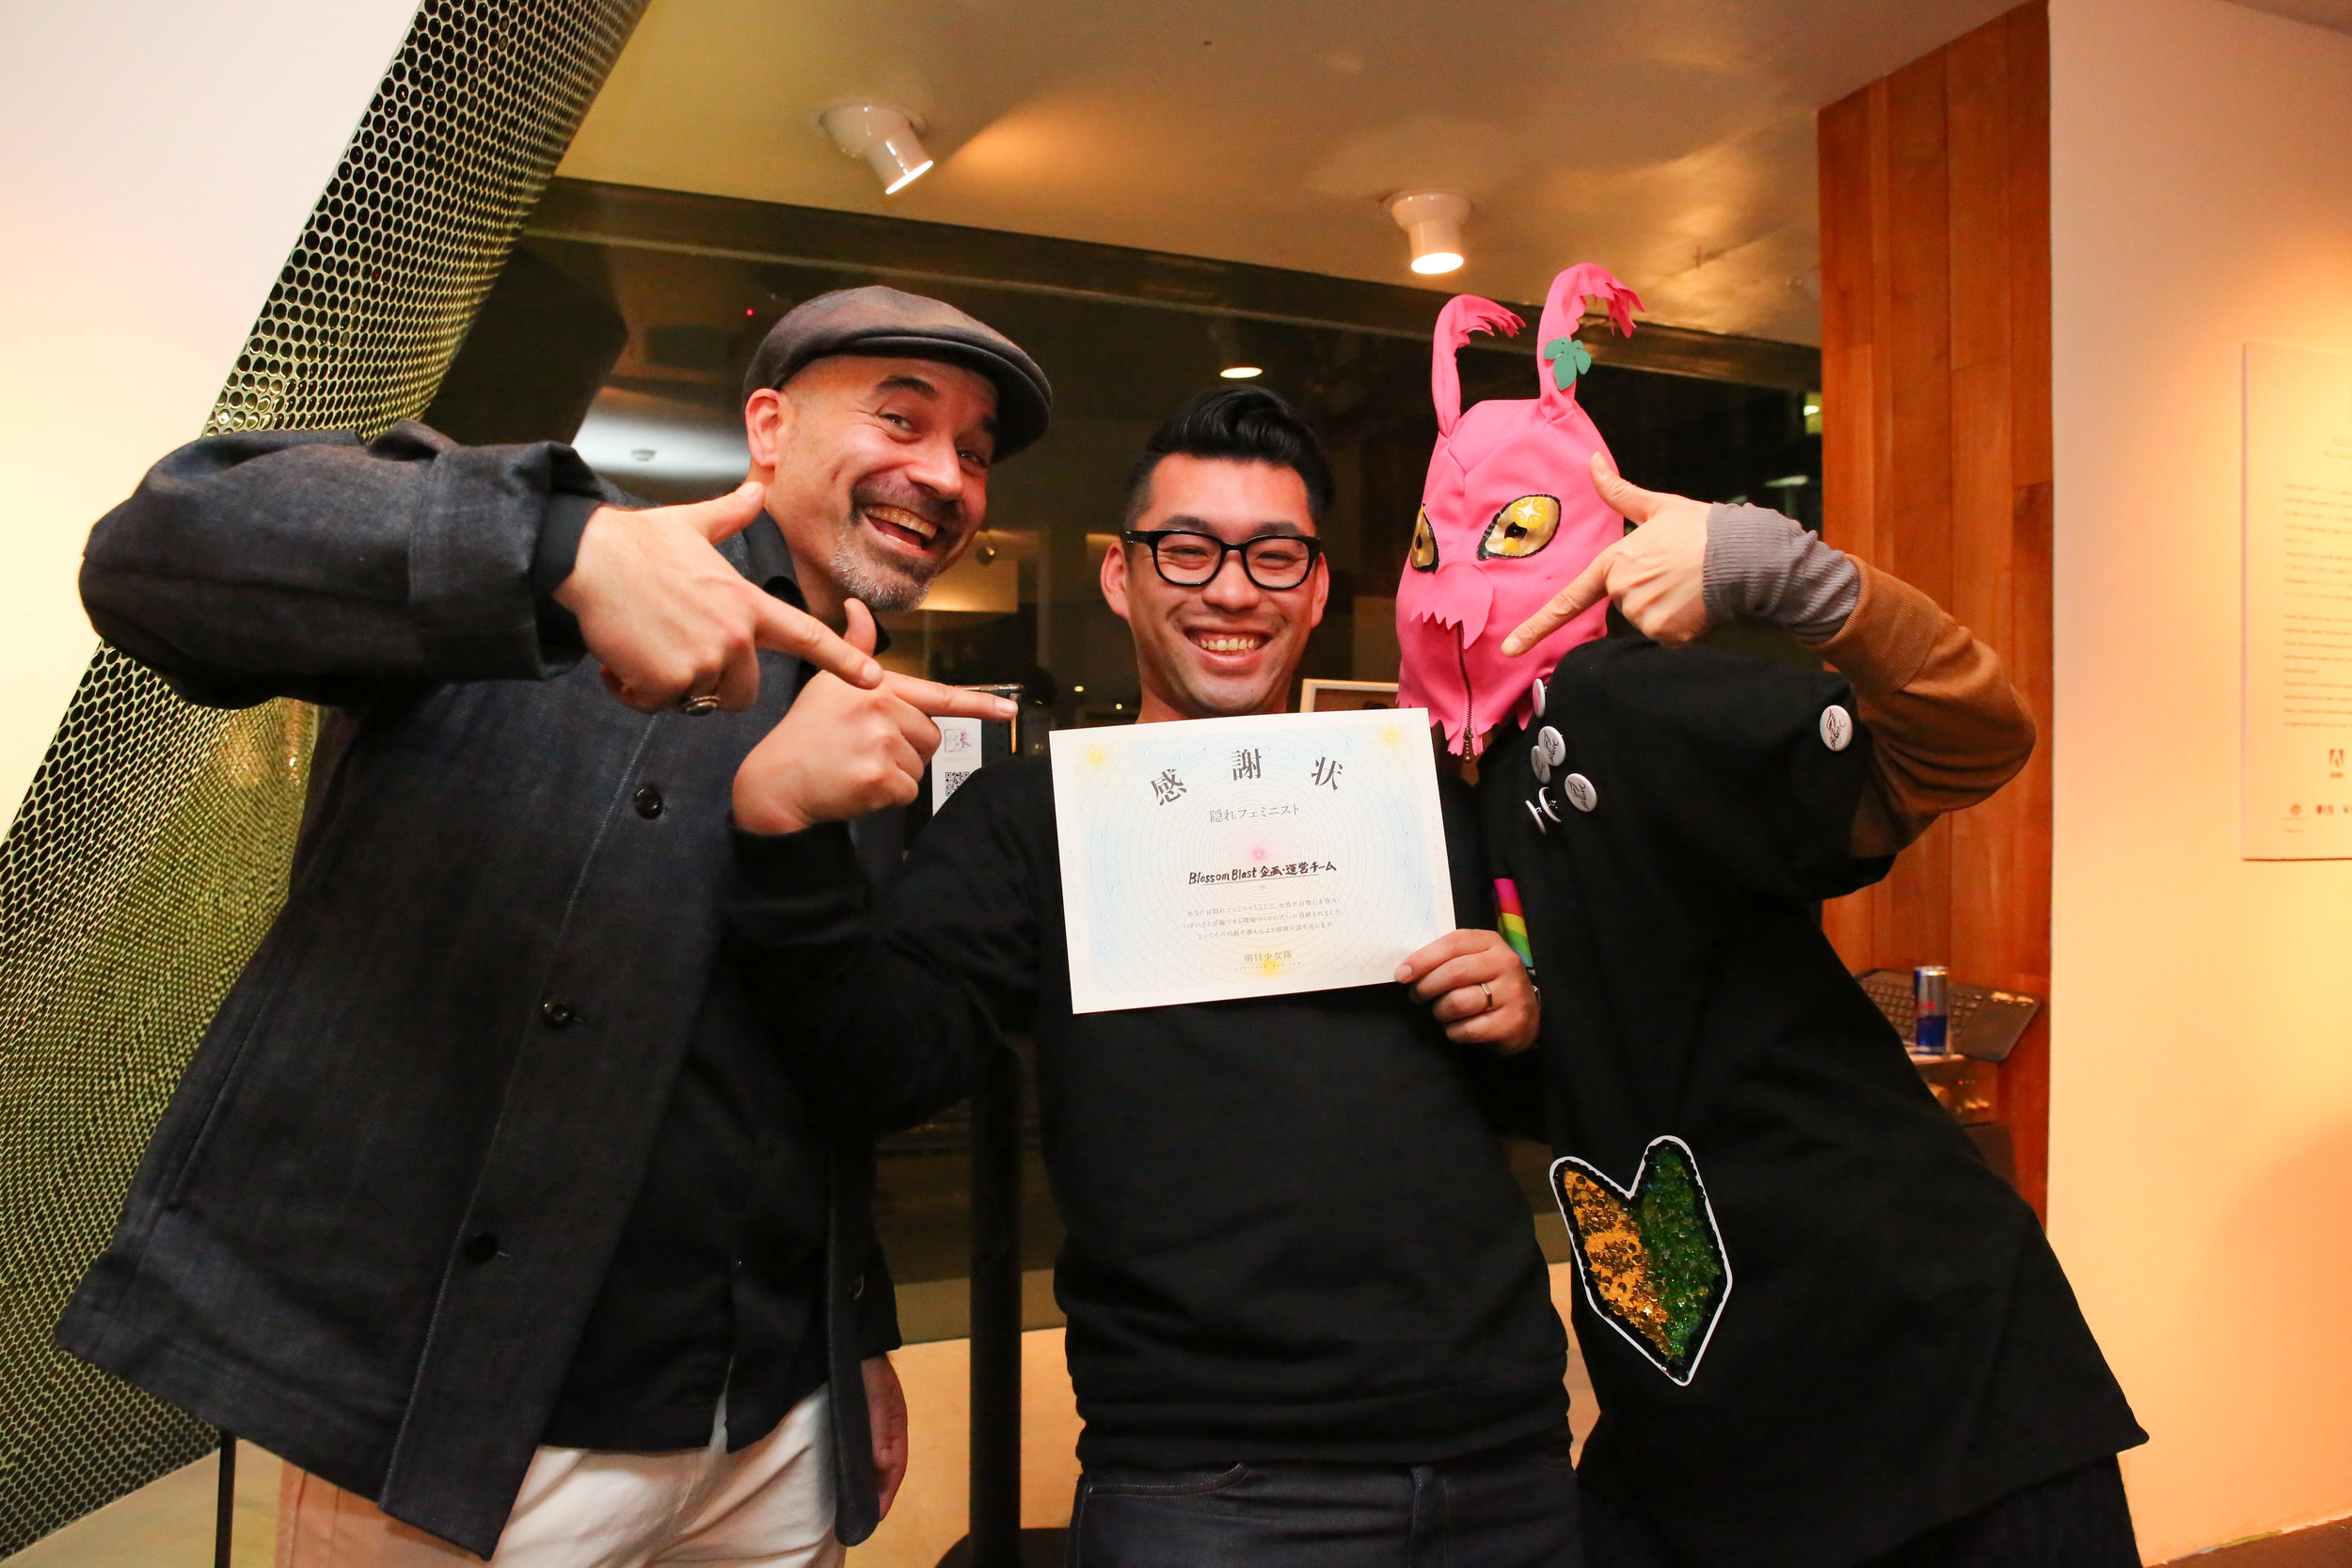 Blossom Blast show March 8 2017 at UltraSuperNew Gallery  TGT is giving the certificate to Blossom Blast企画・運営チーム.  photo by Maiko Miyagawa